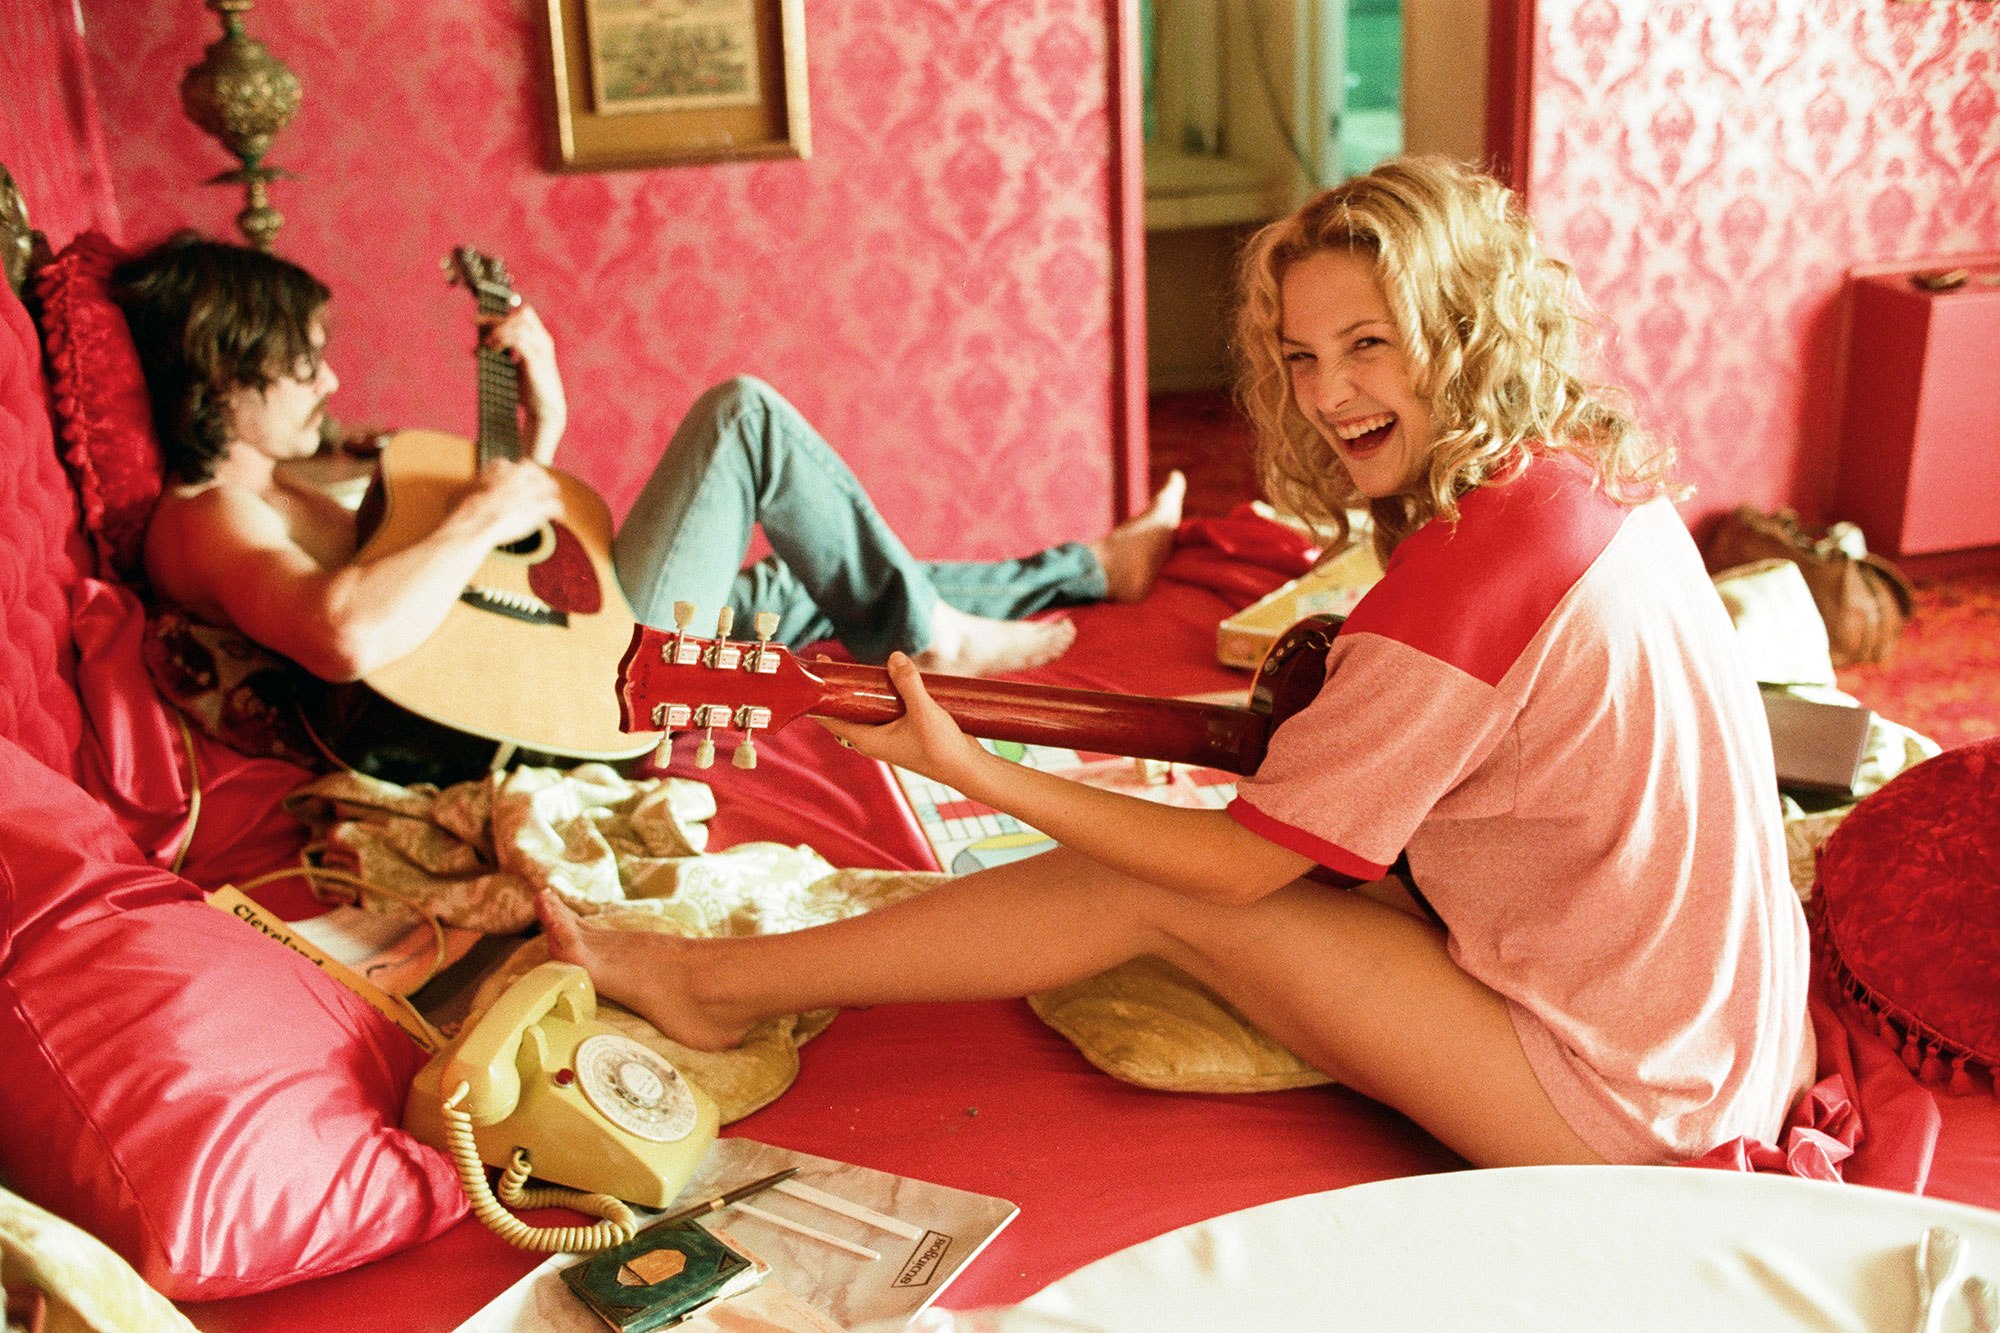 Almost Famous Billy Crudup and Kate Hudson